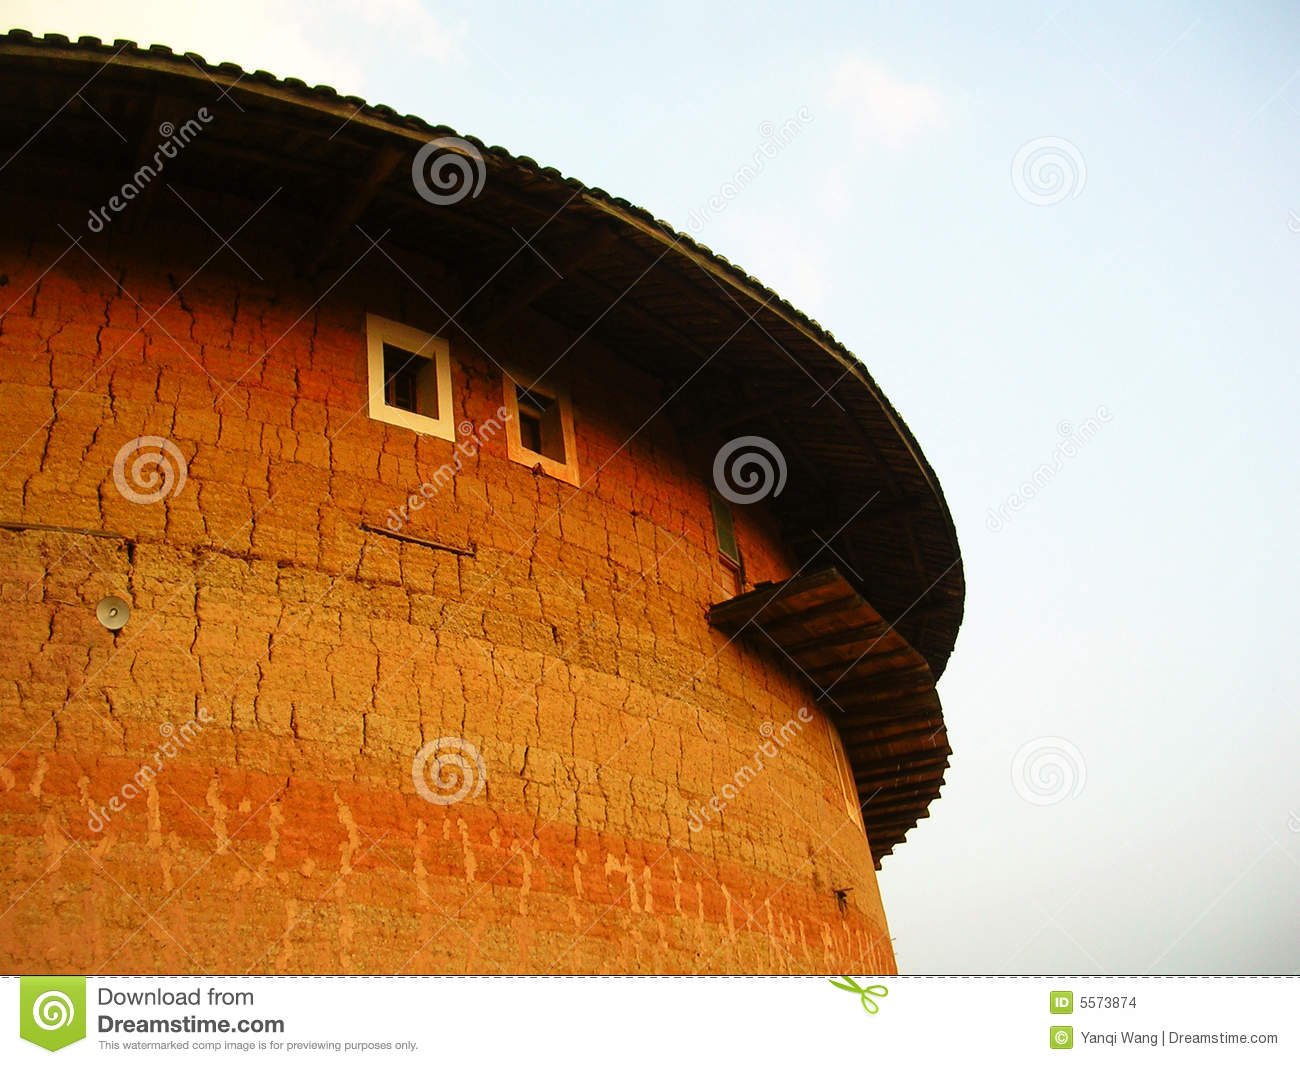 Fujian Tulou great architecture of human being